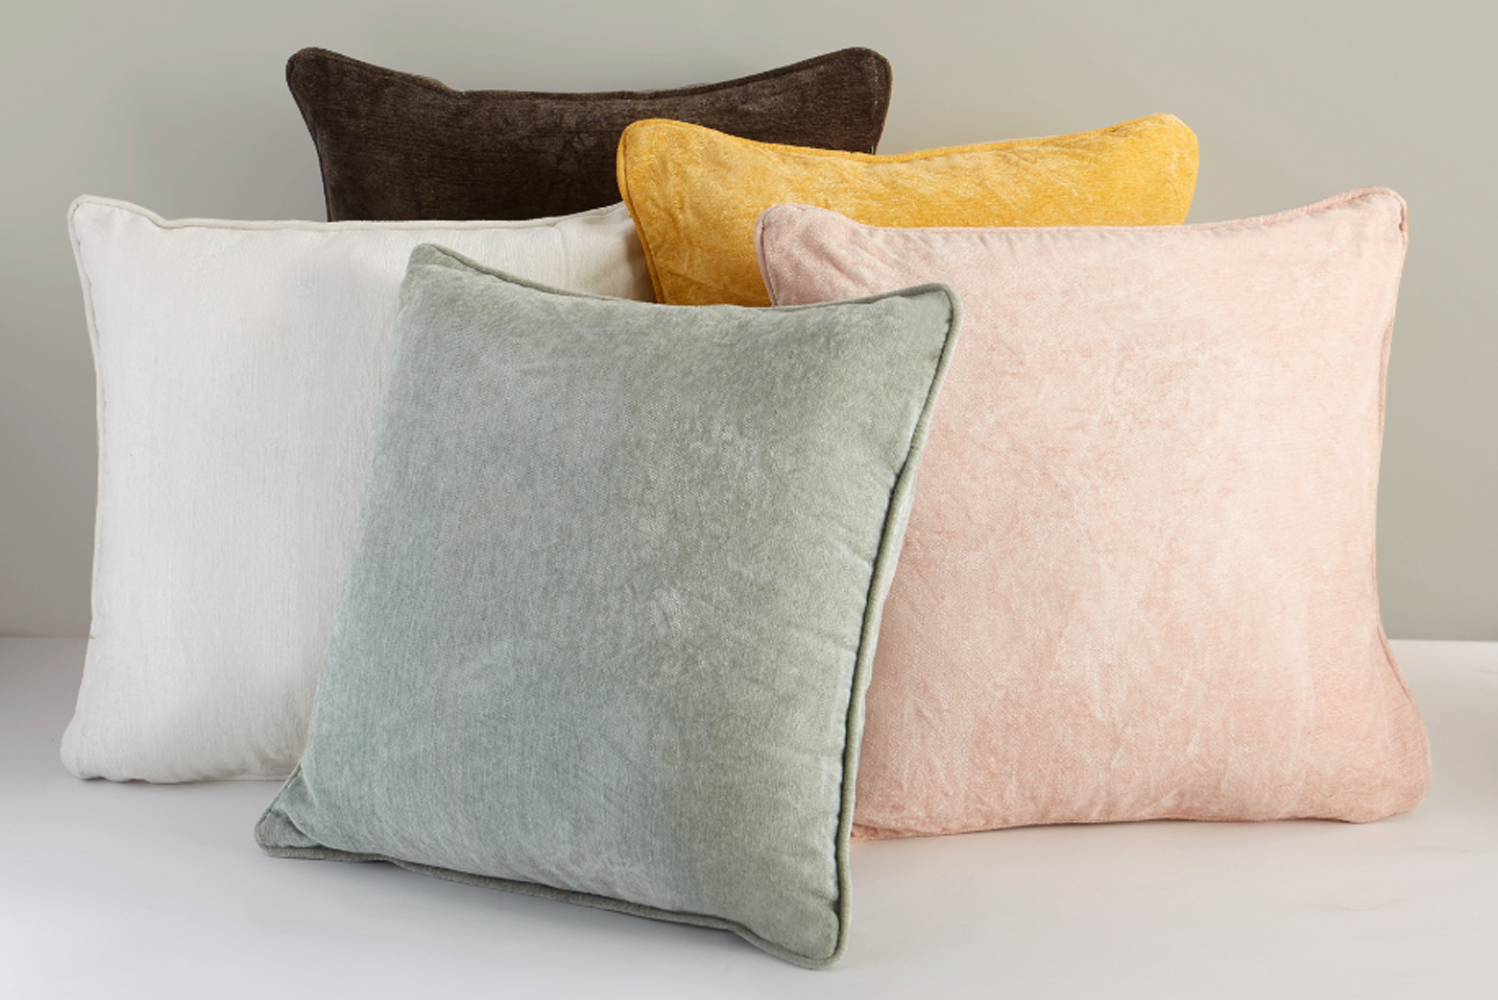 The Loom pillow is an18-inch square pillow that comes in neutral shades.